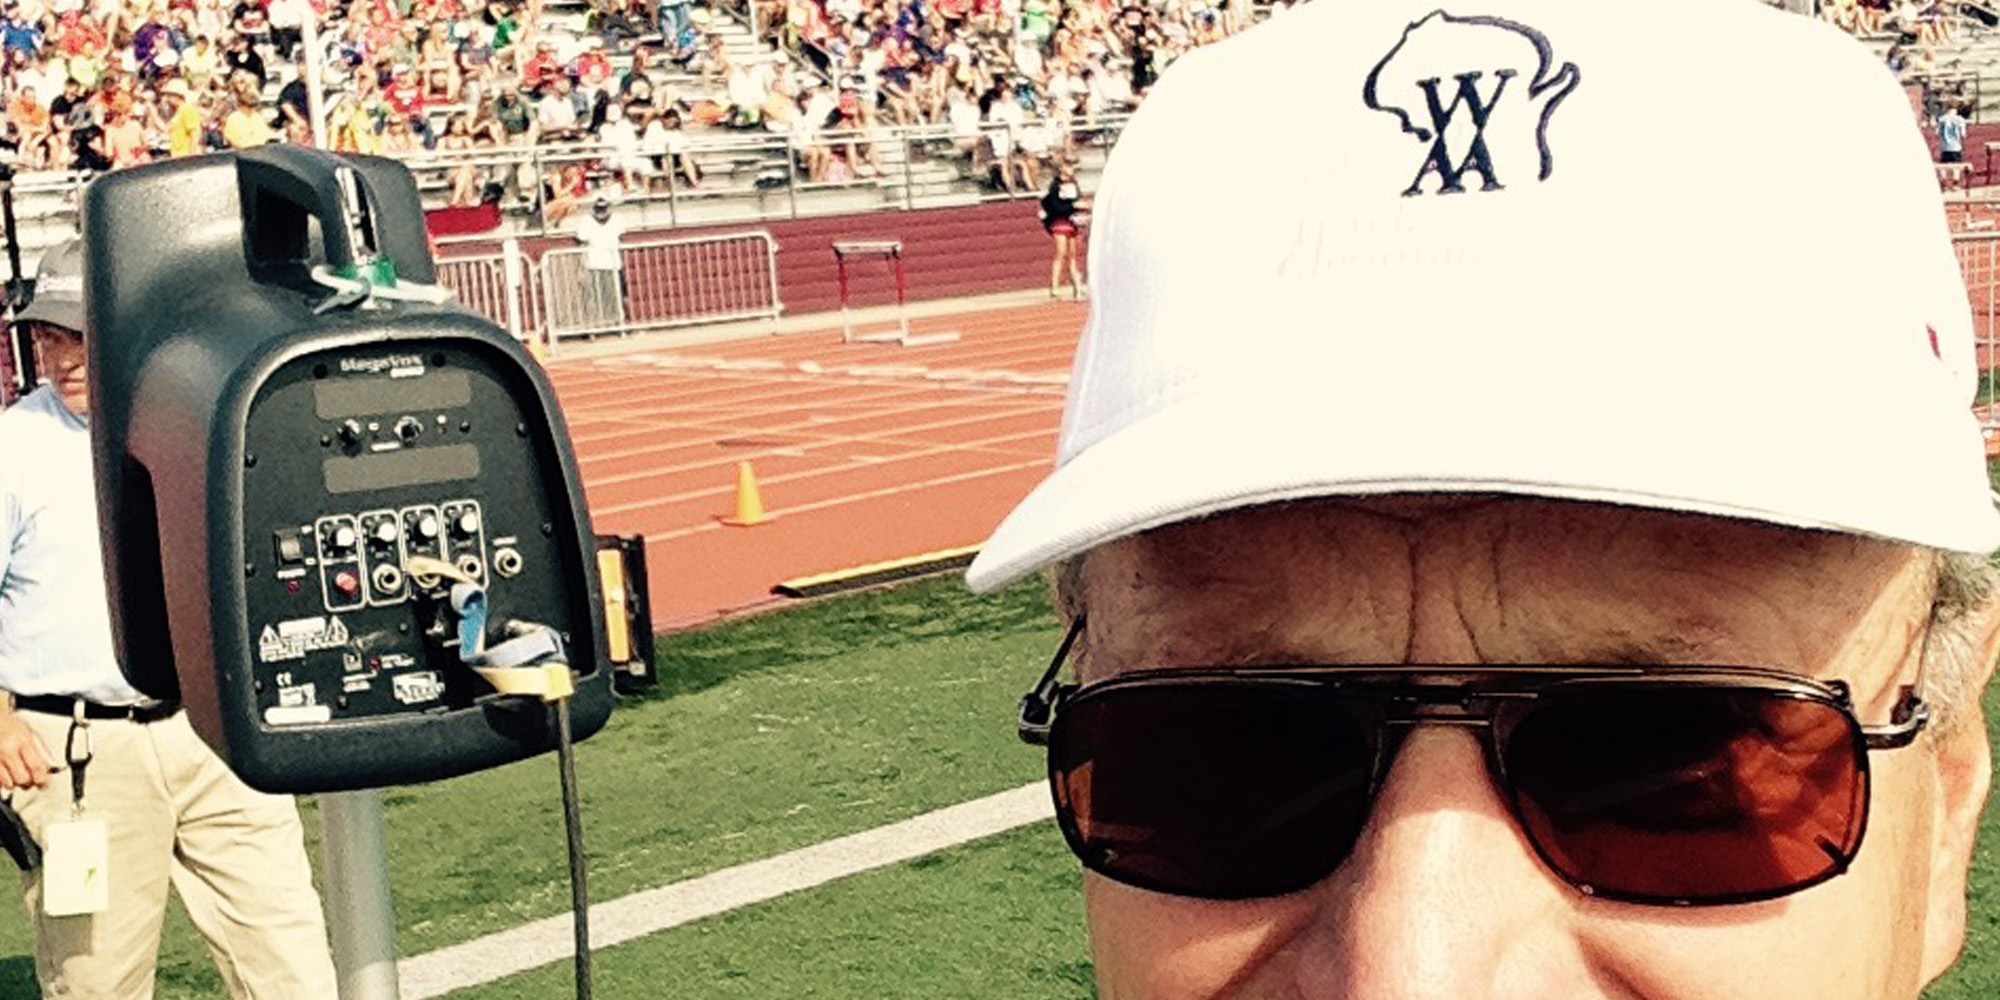 The Right PA System for Track and Field